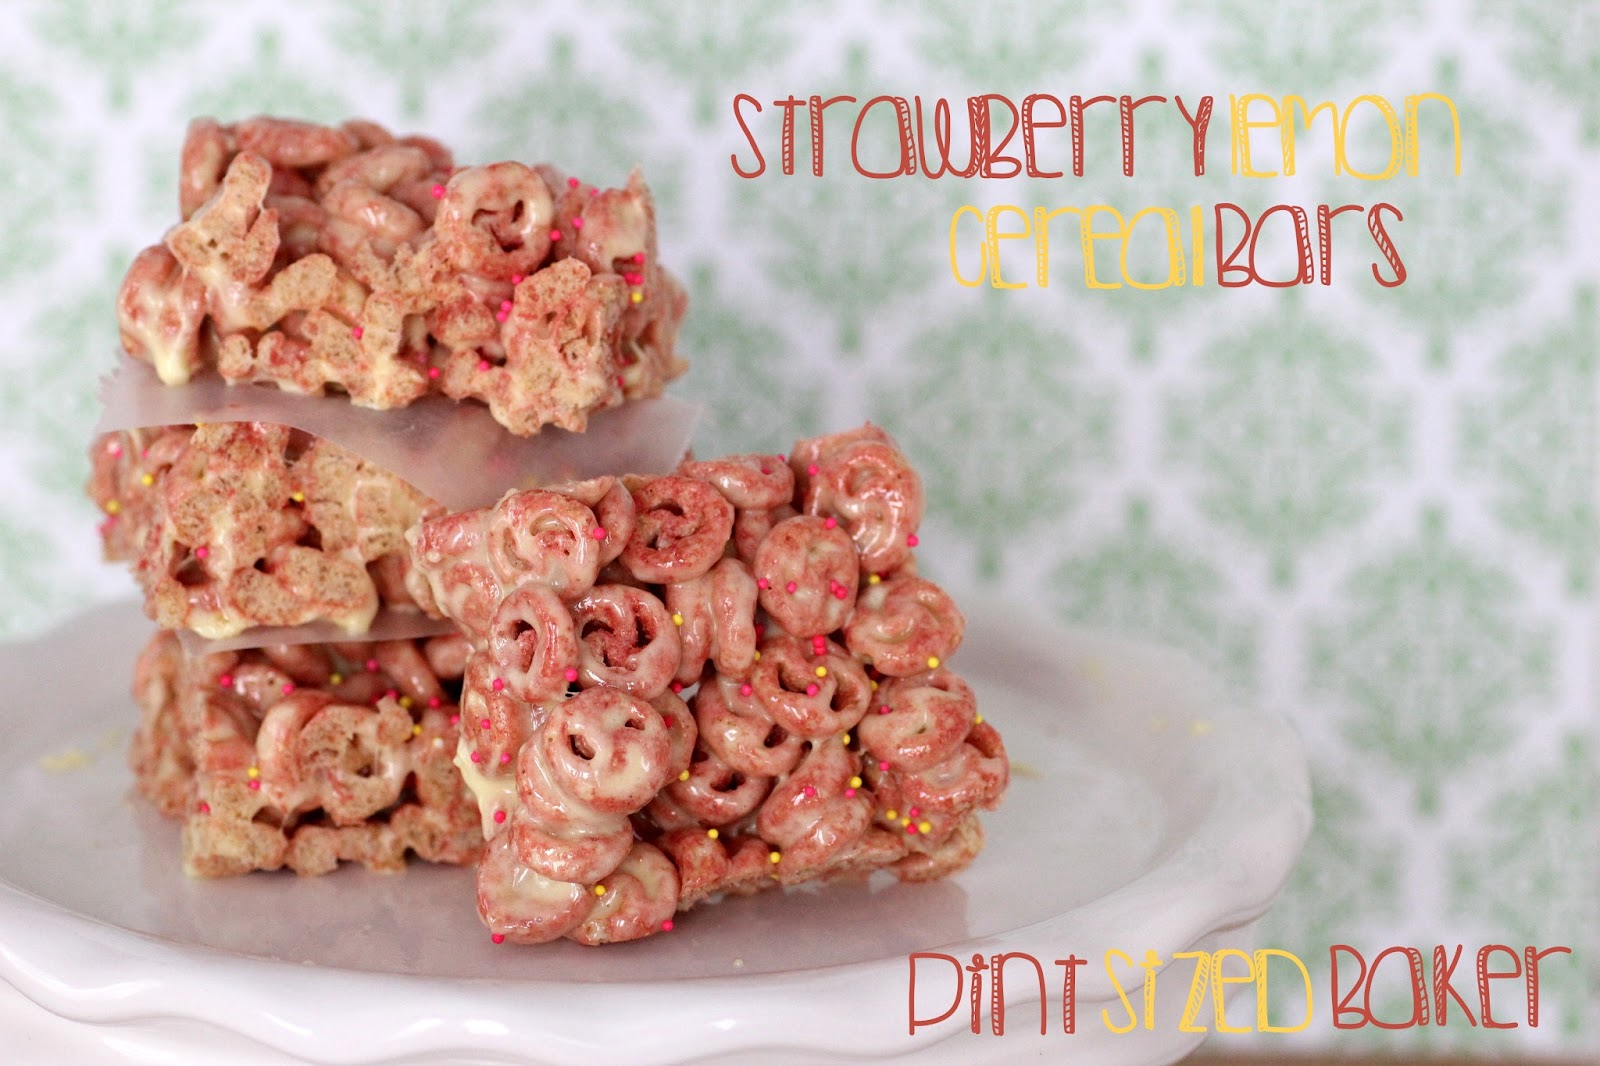 Strawberry lemon cereal bars pint sized baker strawberry lemon cereal bars ccuart